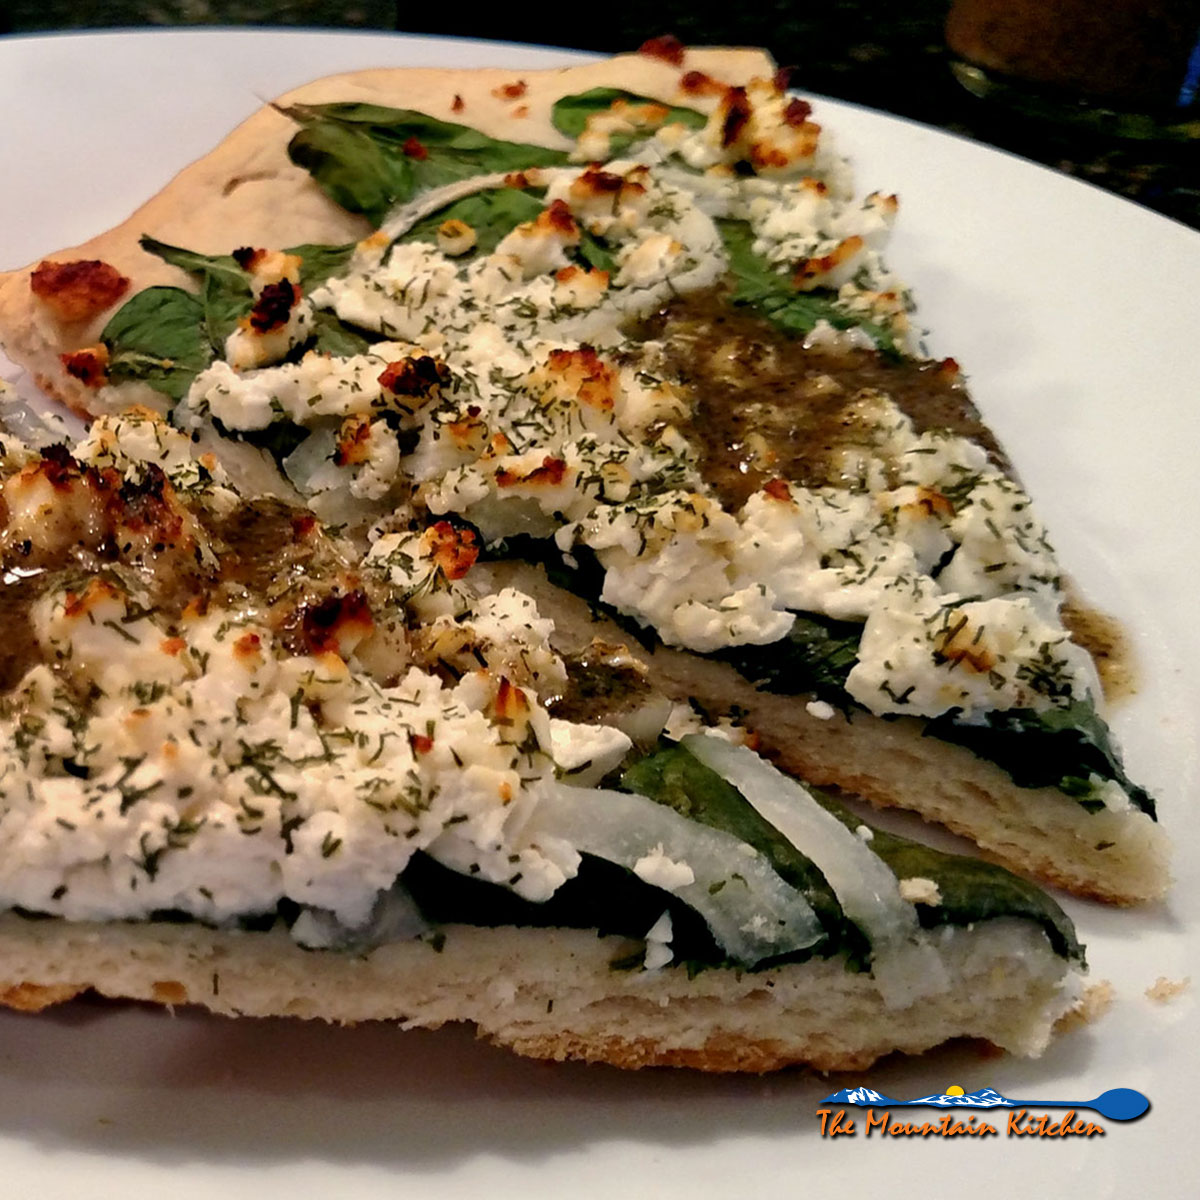 This is spinach feta pizza is topped with spinach, onions, delicious and tangy feta cheese and dusted with fennel, then drizzled with Greek dressing.